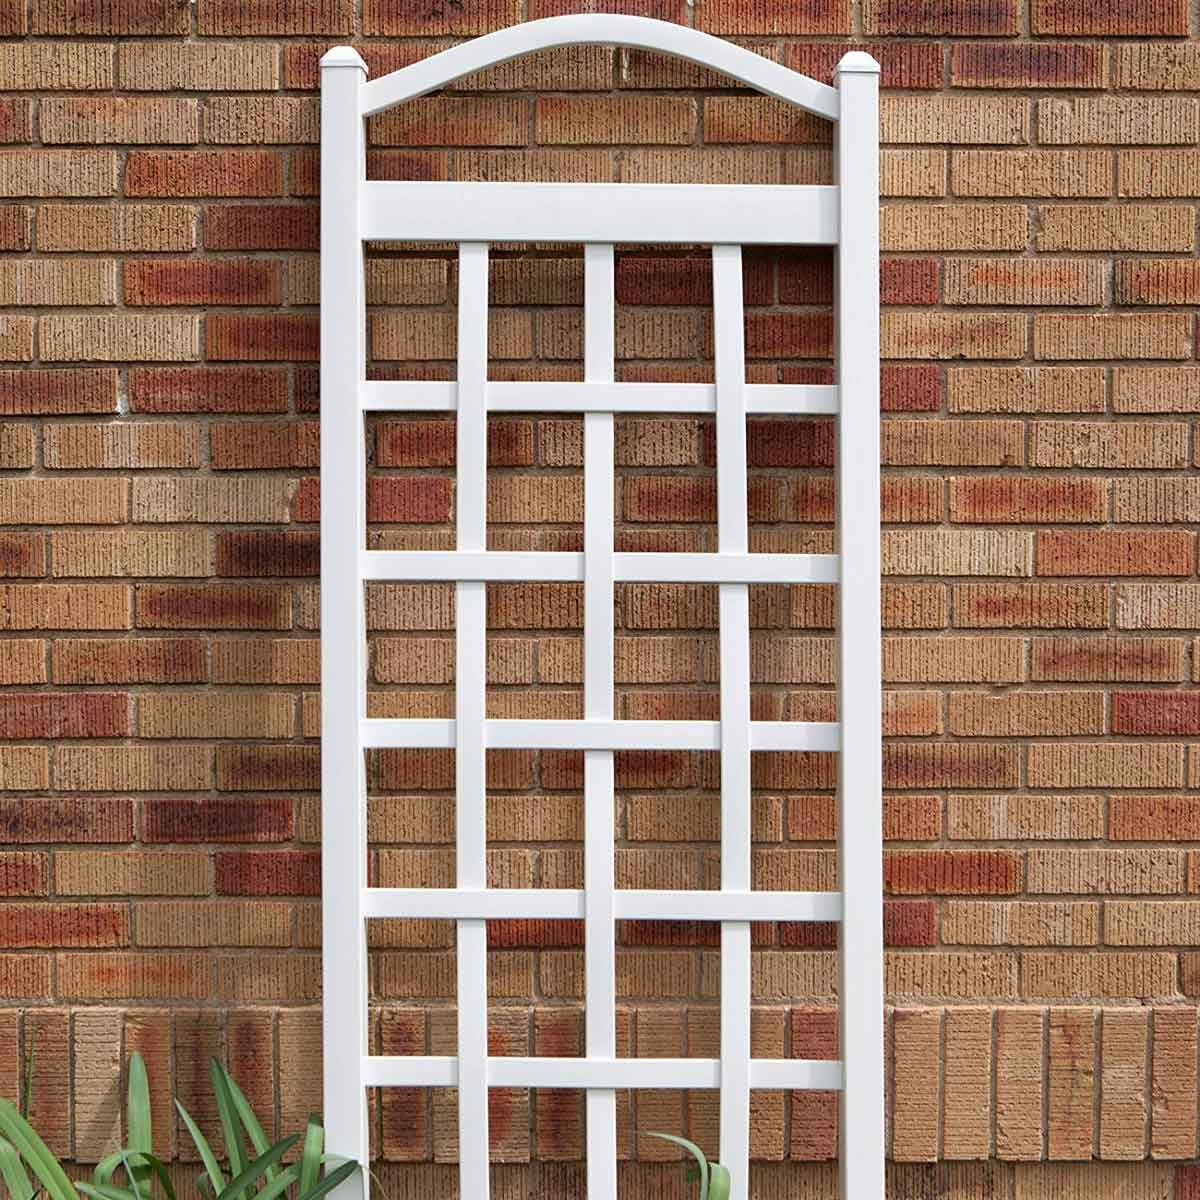 White trellis leaning against a wall